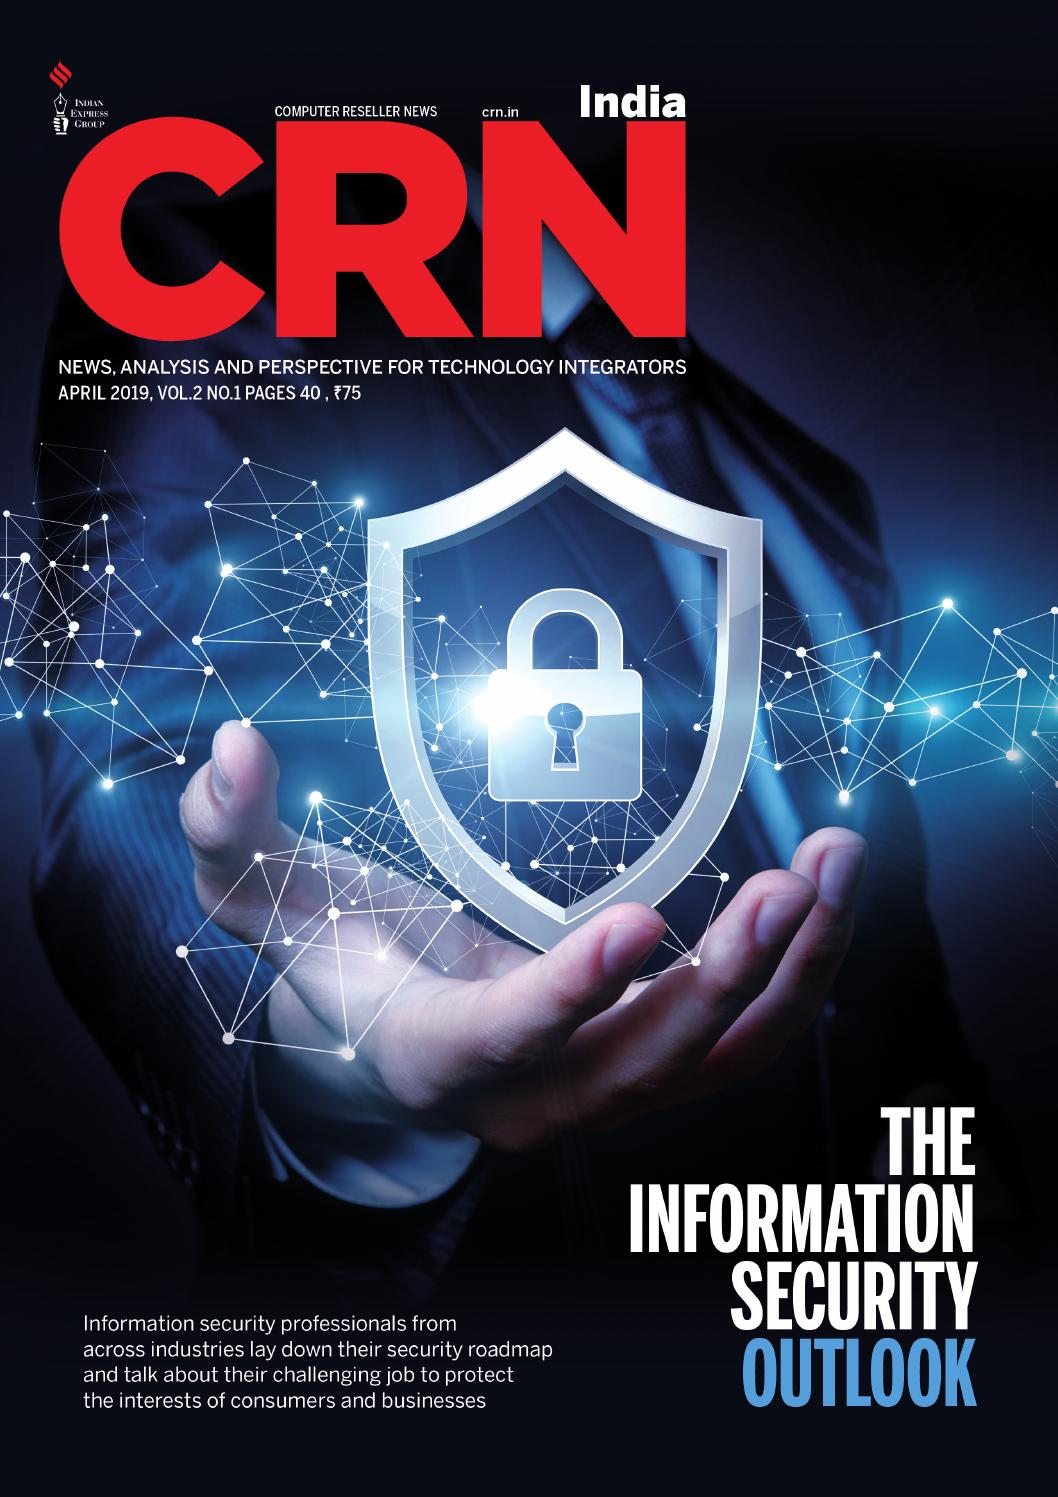 CRN India (Vol 2, No 1) April, 2019 by Indian Express - issuu